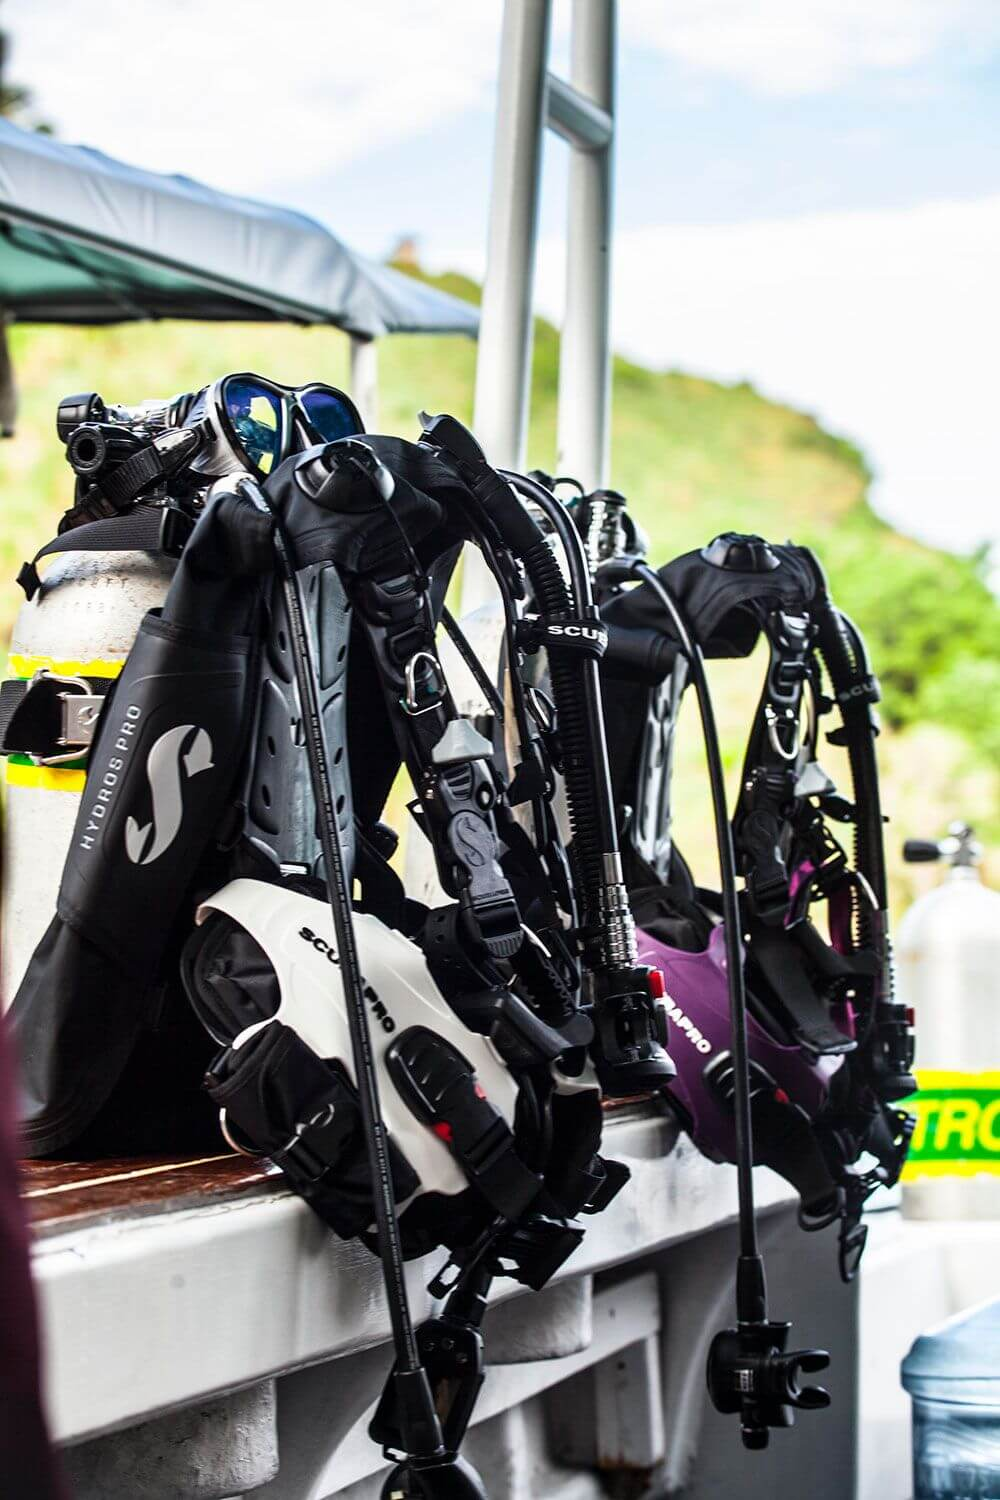 Buying Your First Set of Dive Gear | SCUBAPRO